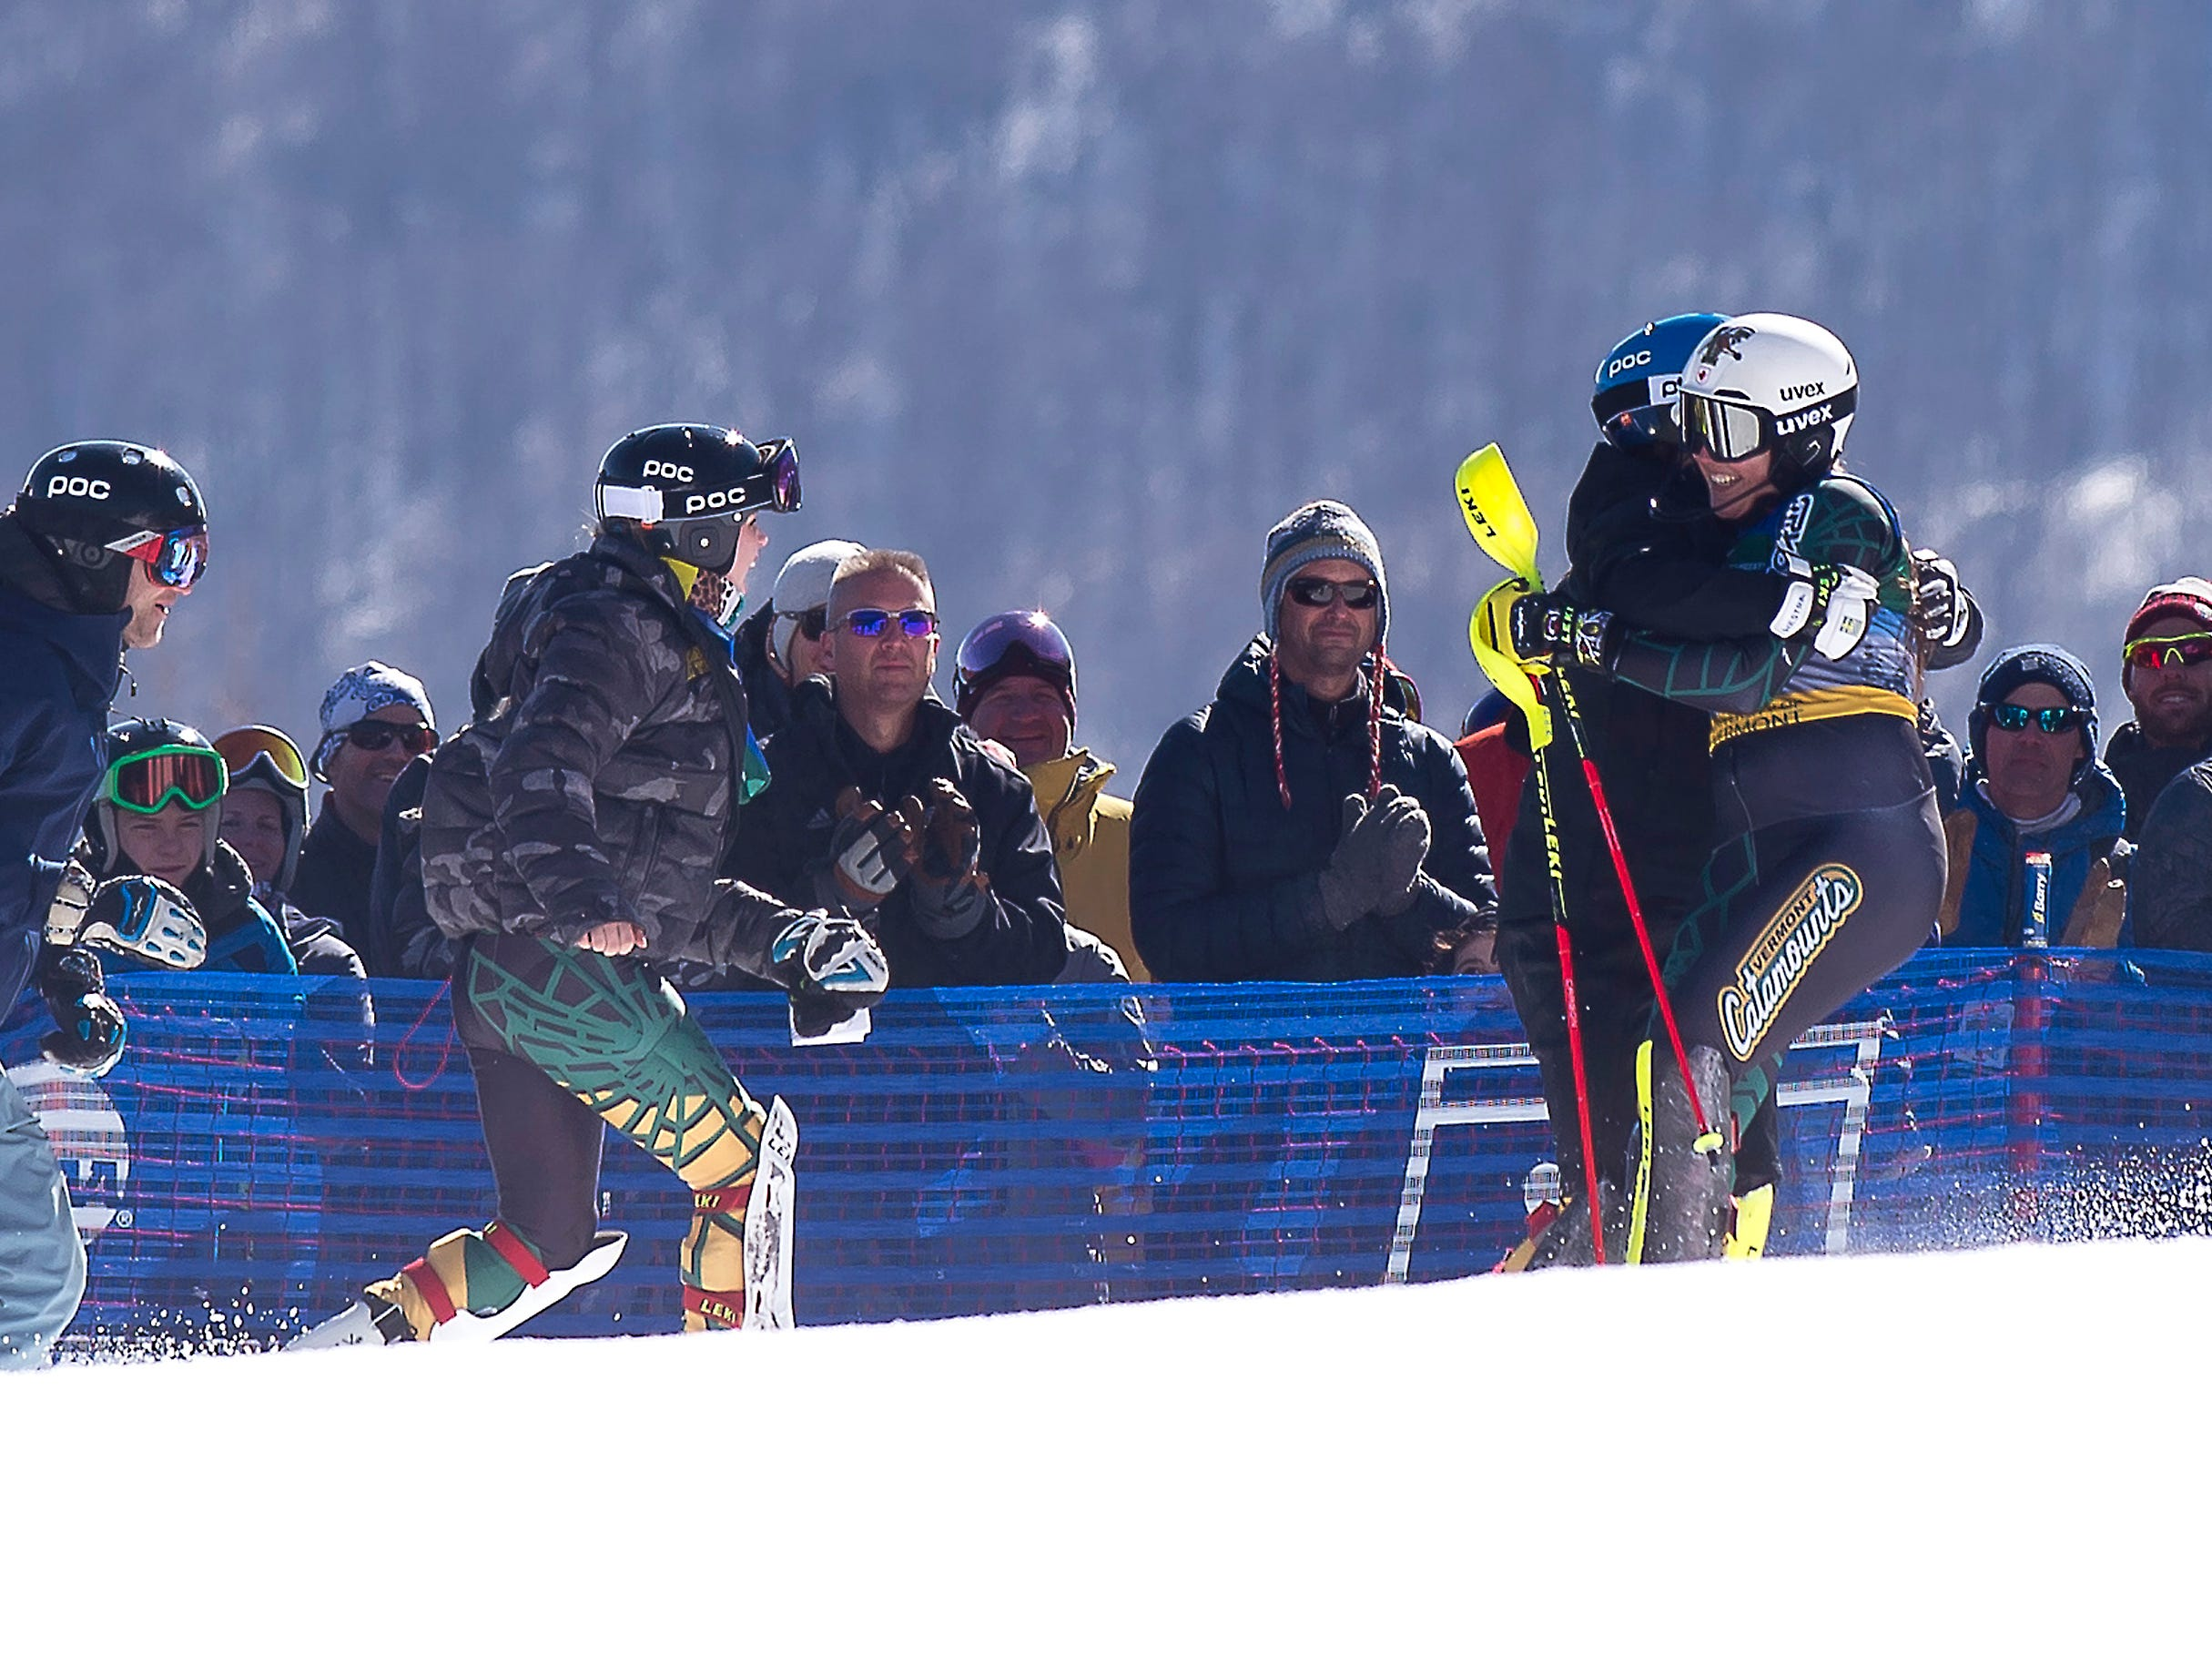 The University of Vermont's Laurence St. Germain is mobbed by teammates after winning the slalom title at the NCAA championships on Saturday at Stowe Mountain Resort.